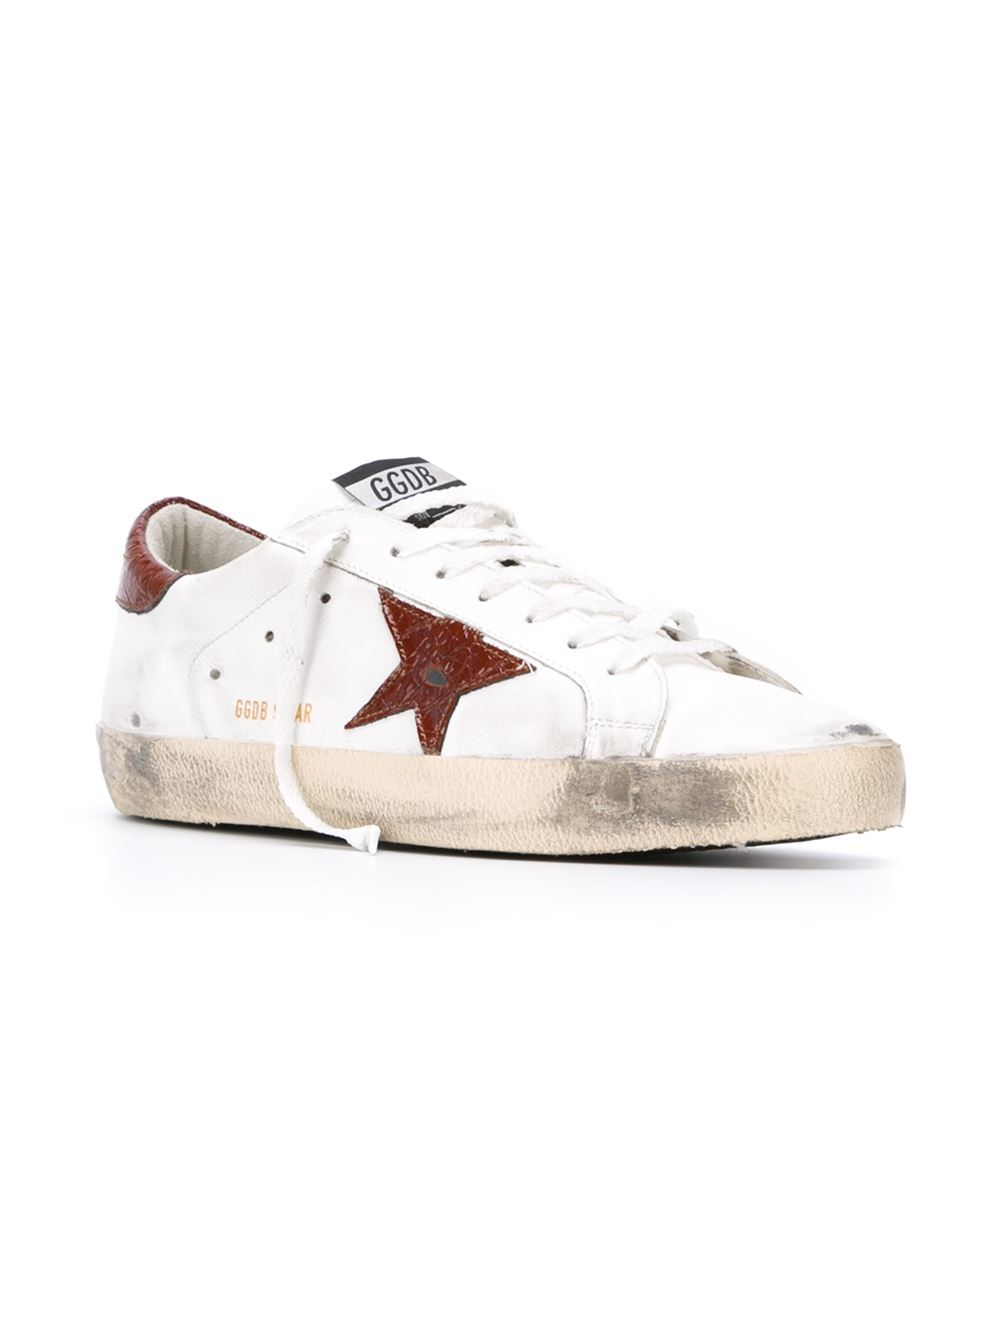 lyst golden goose deluxe brand superstar leather low top sneakers in white for men. Black Bedroom Furniture Sets. Home Design Ideas